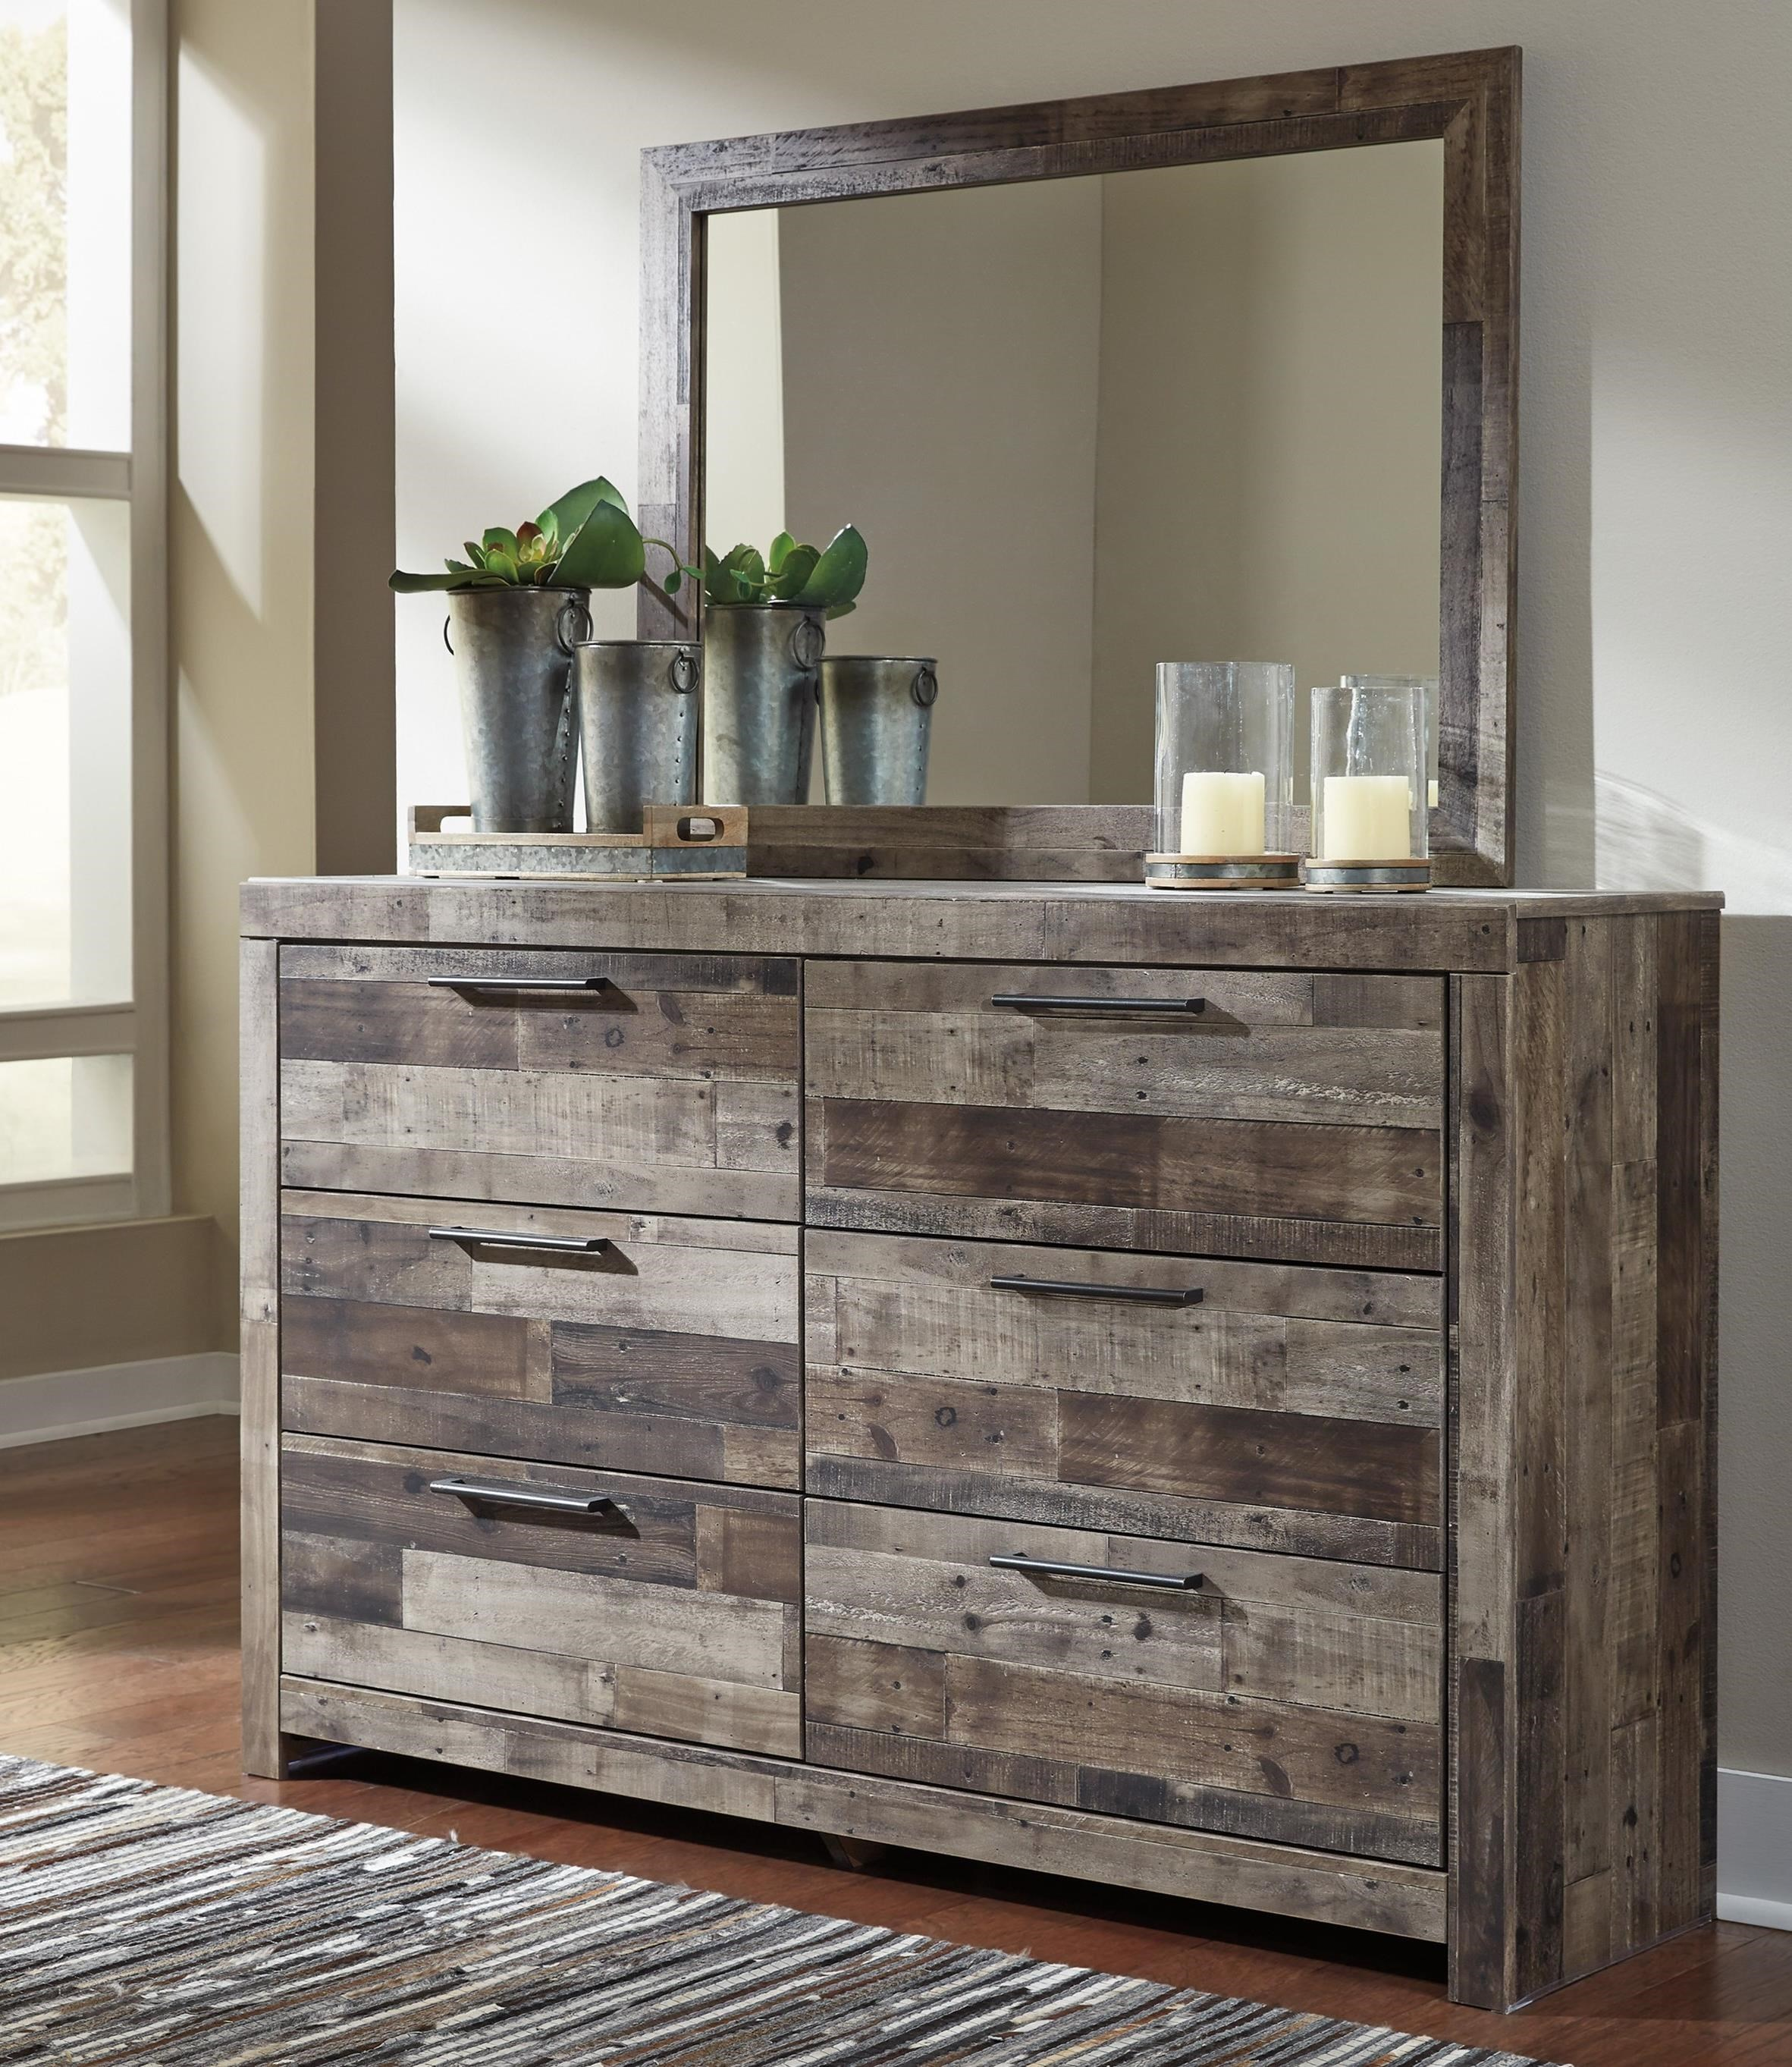 Benchcraft By Ashley Derekson Rustic Modern Dresser